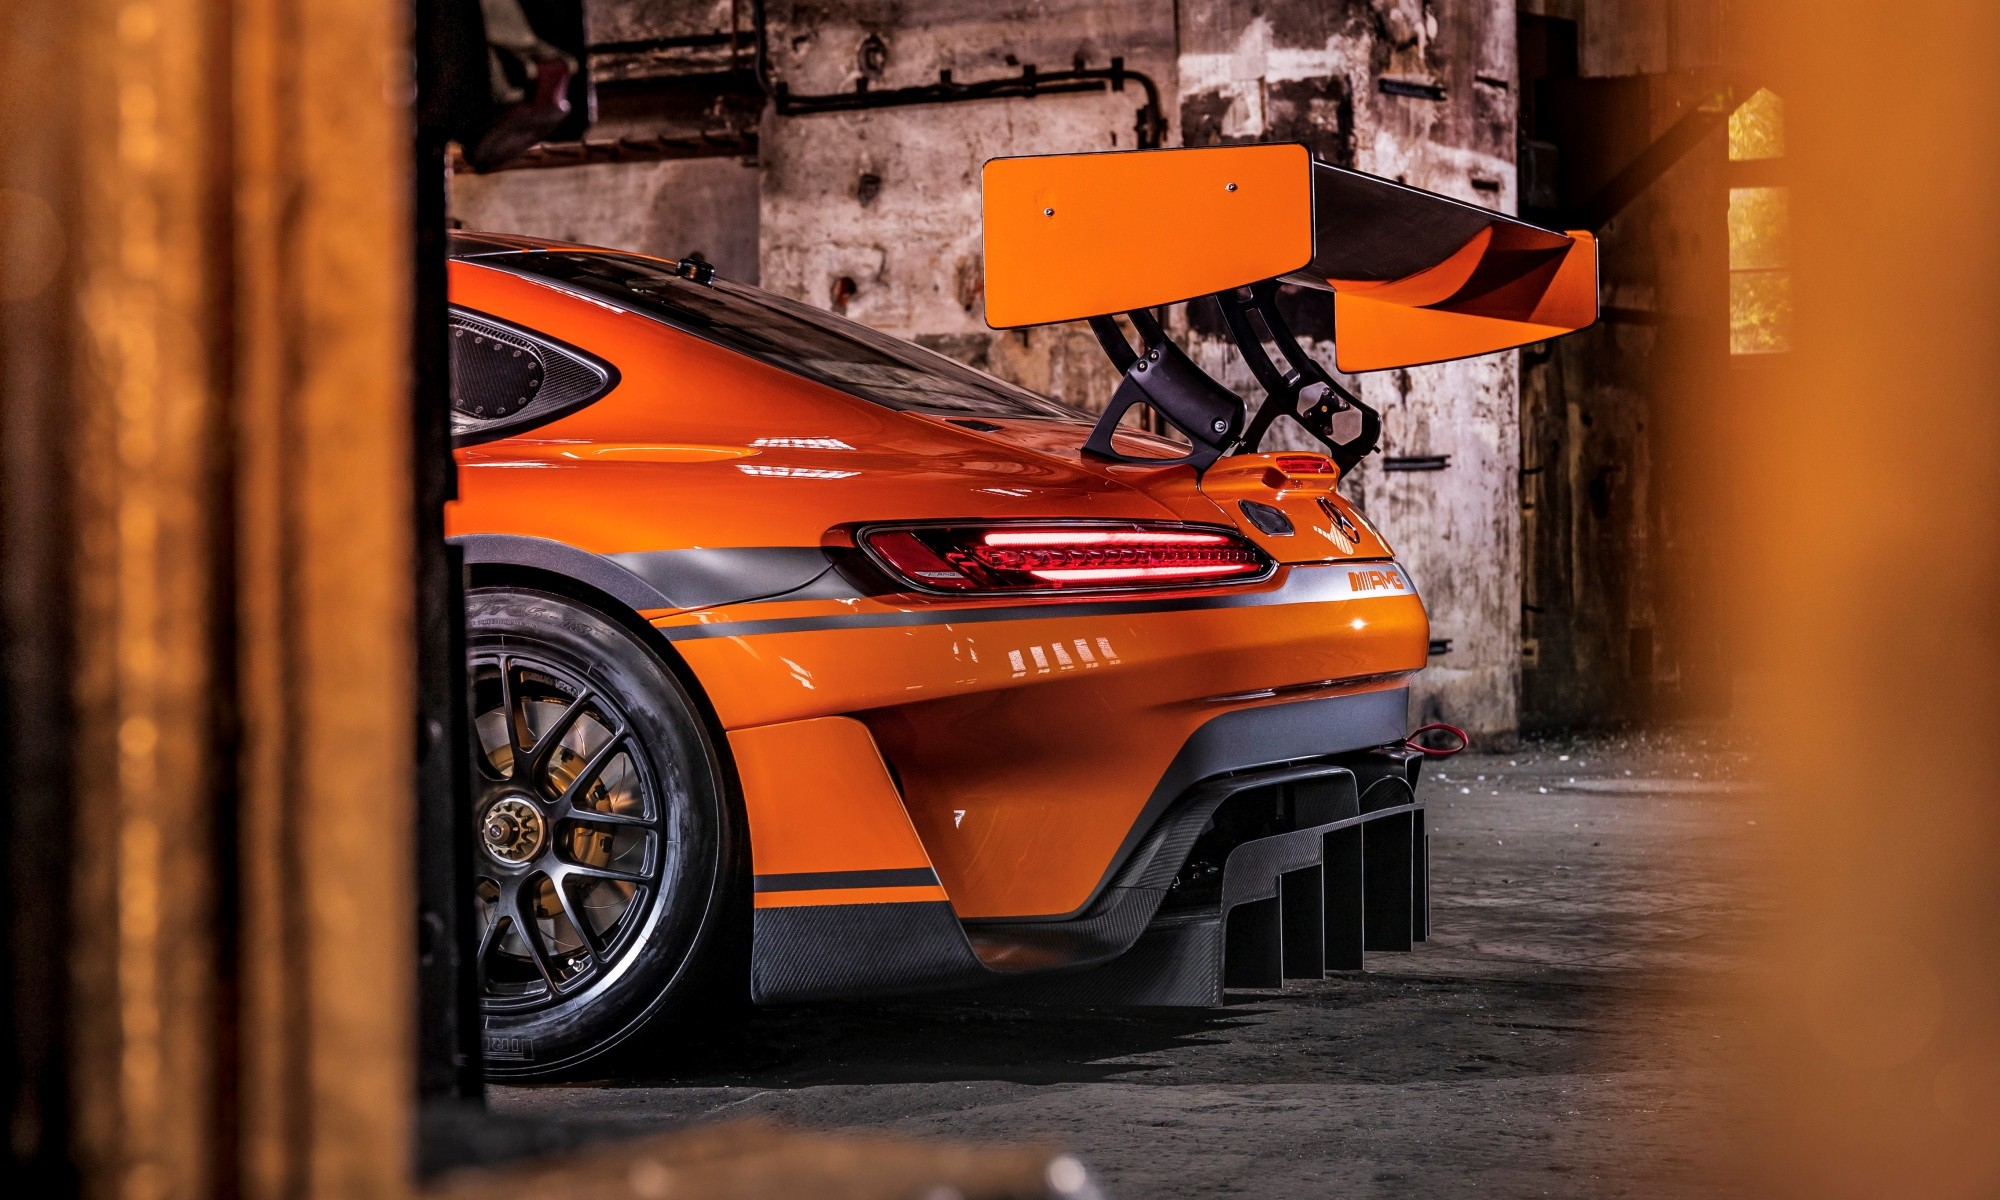 Mercedes-AMG GT3 rear wing